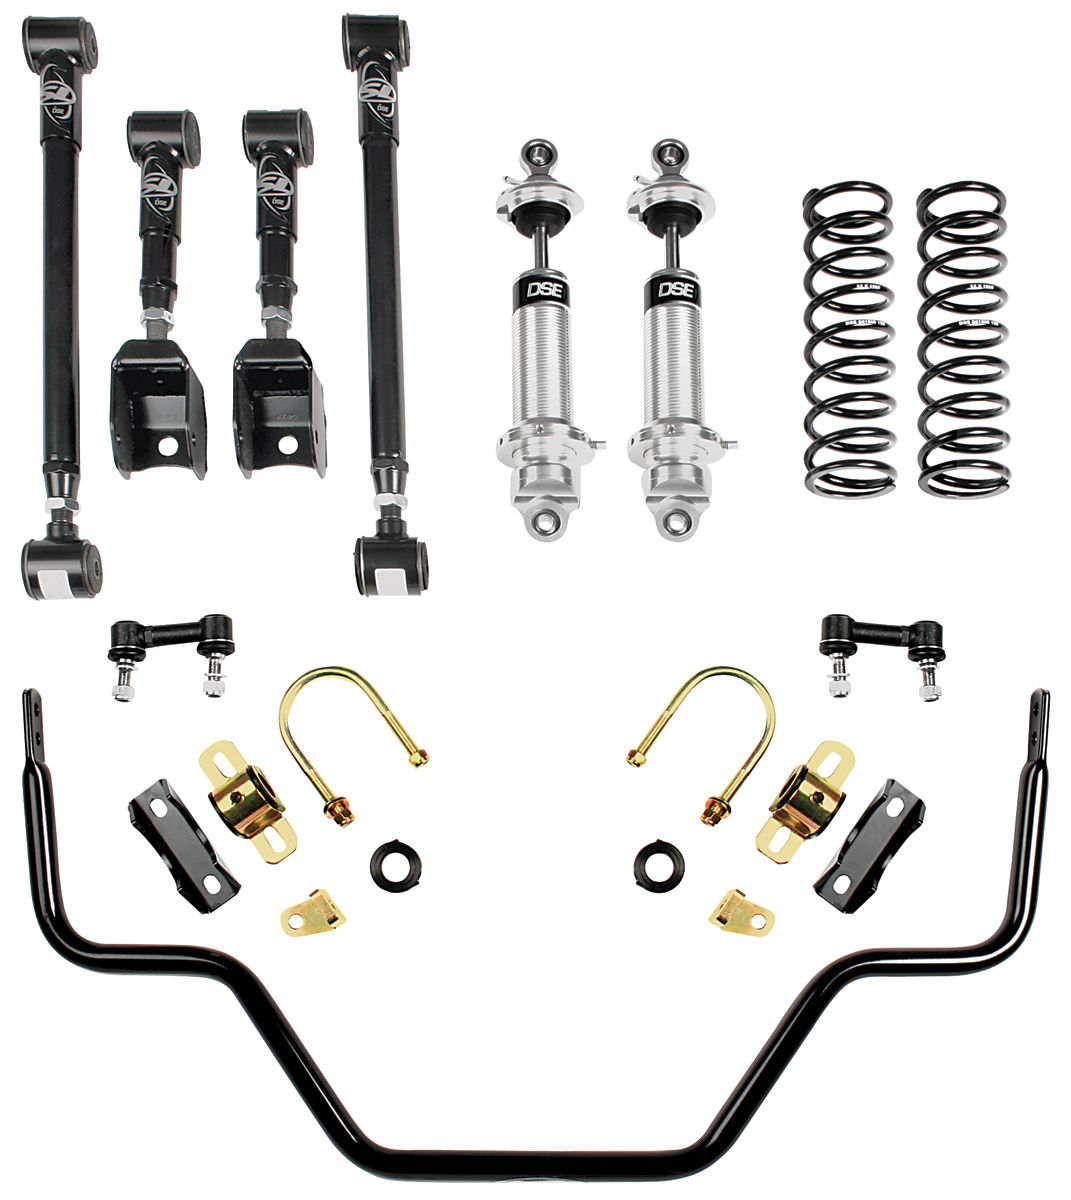 88 Monte Carlo Suspension Speed 3 Kit Rear By Detroit Speed For Years